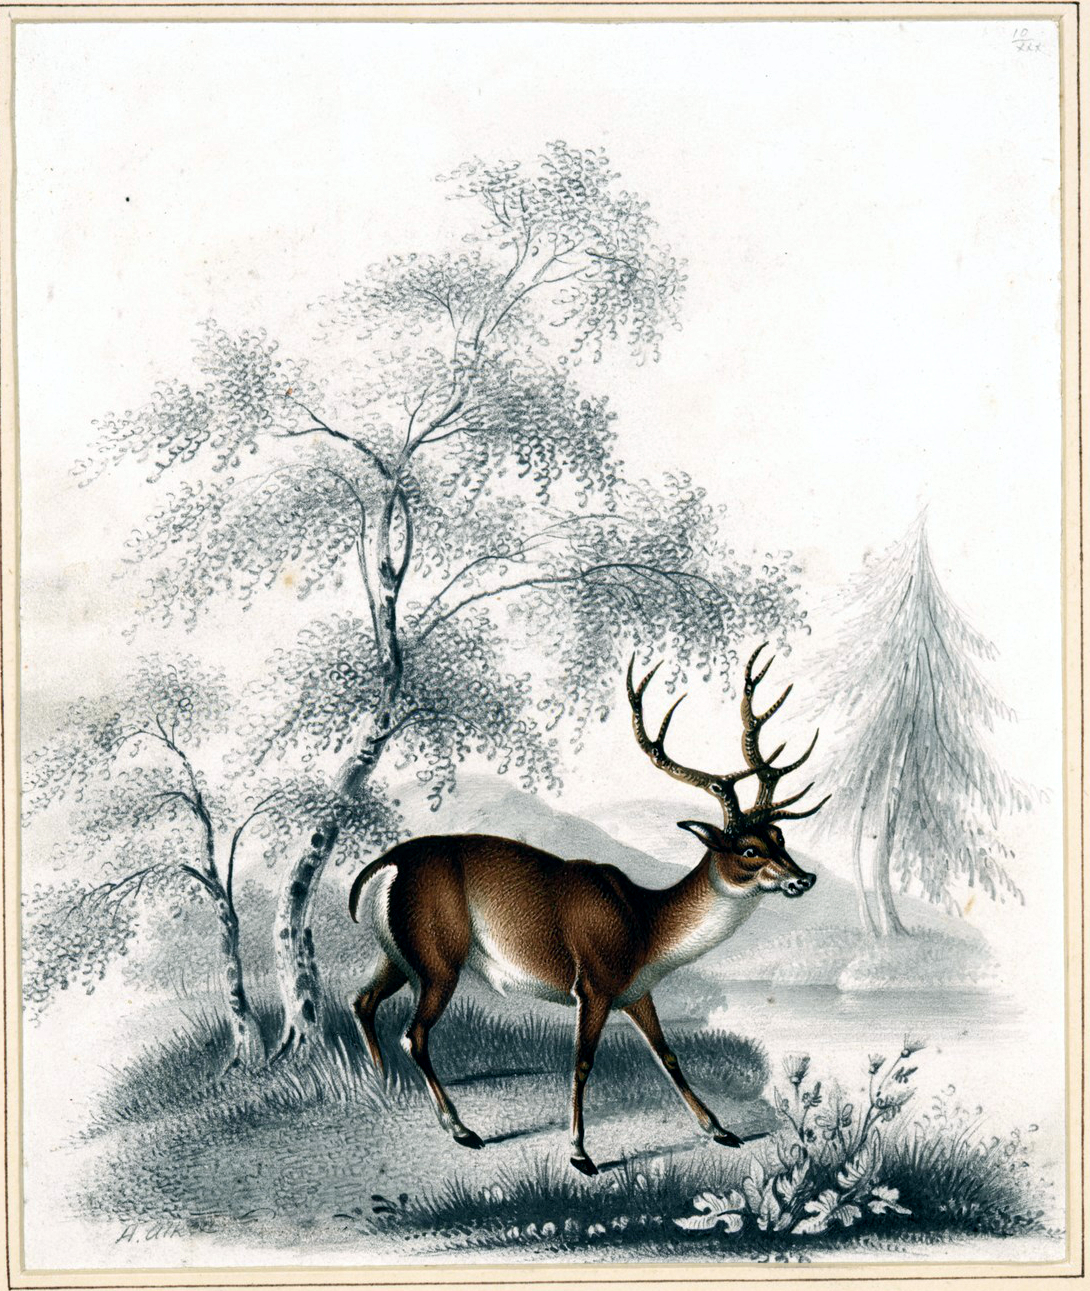 Free vintage illustration of a lone deer in the woods